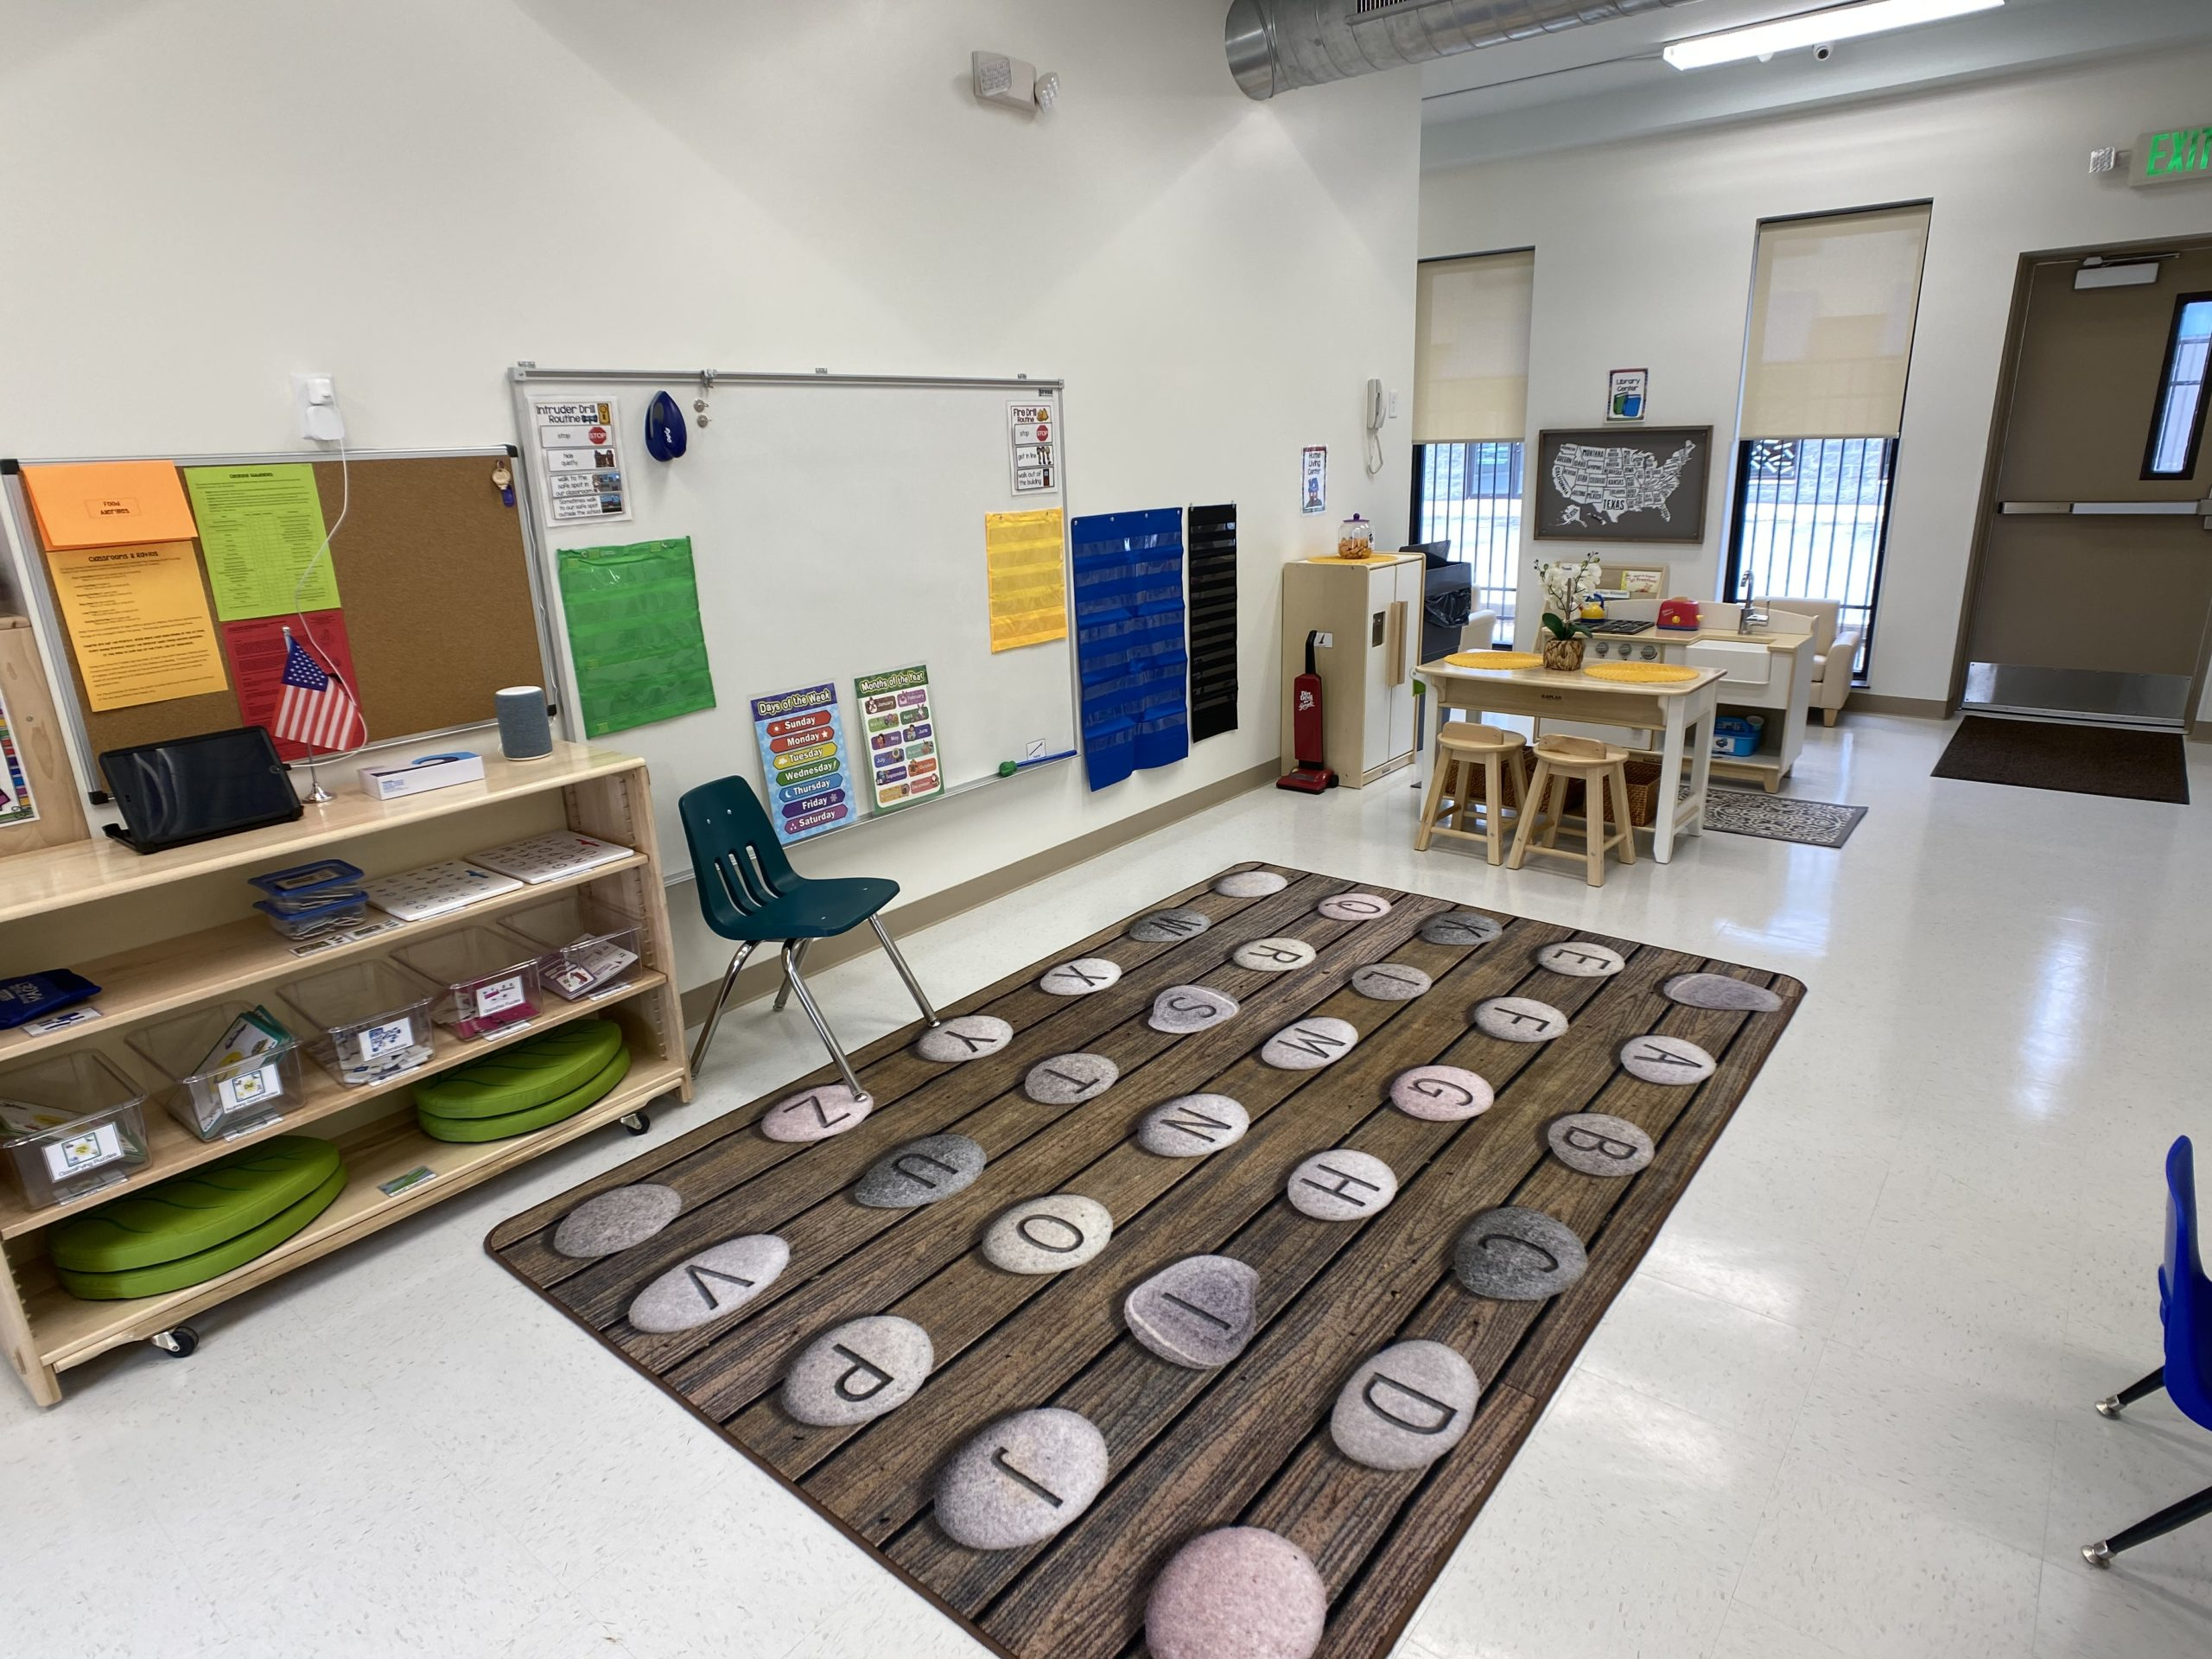 children's learning area - bulletin boards